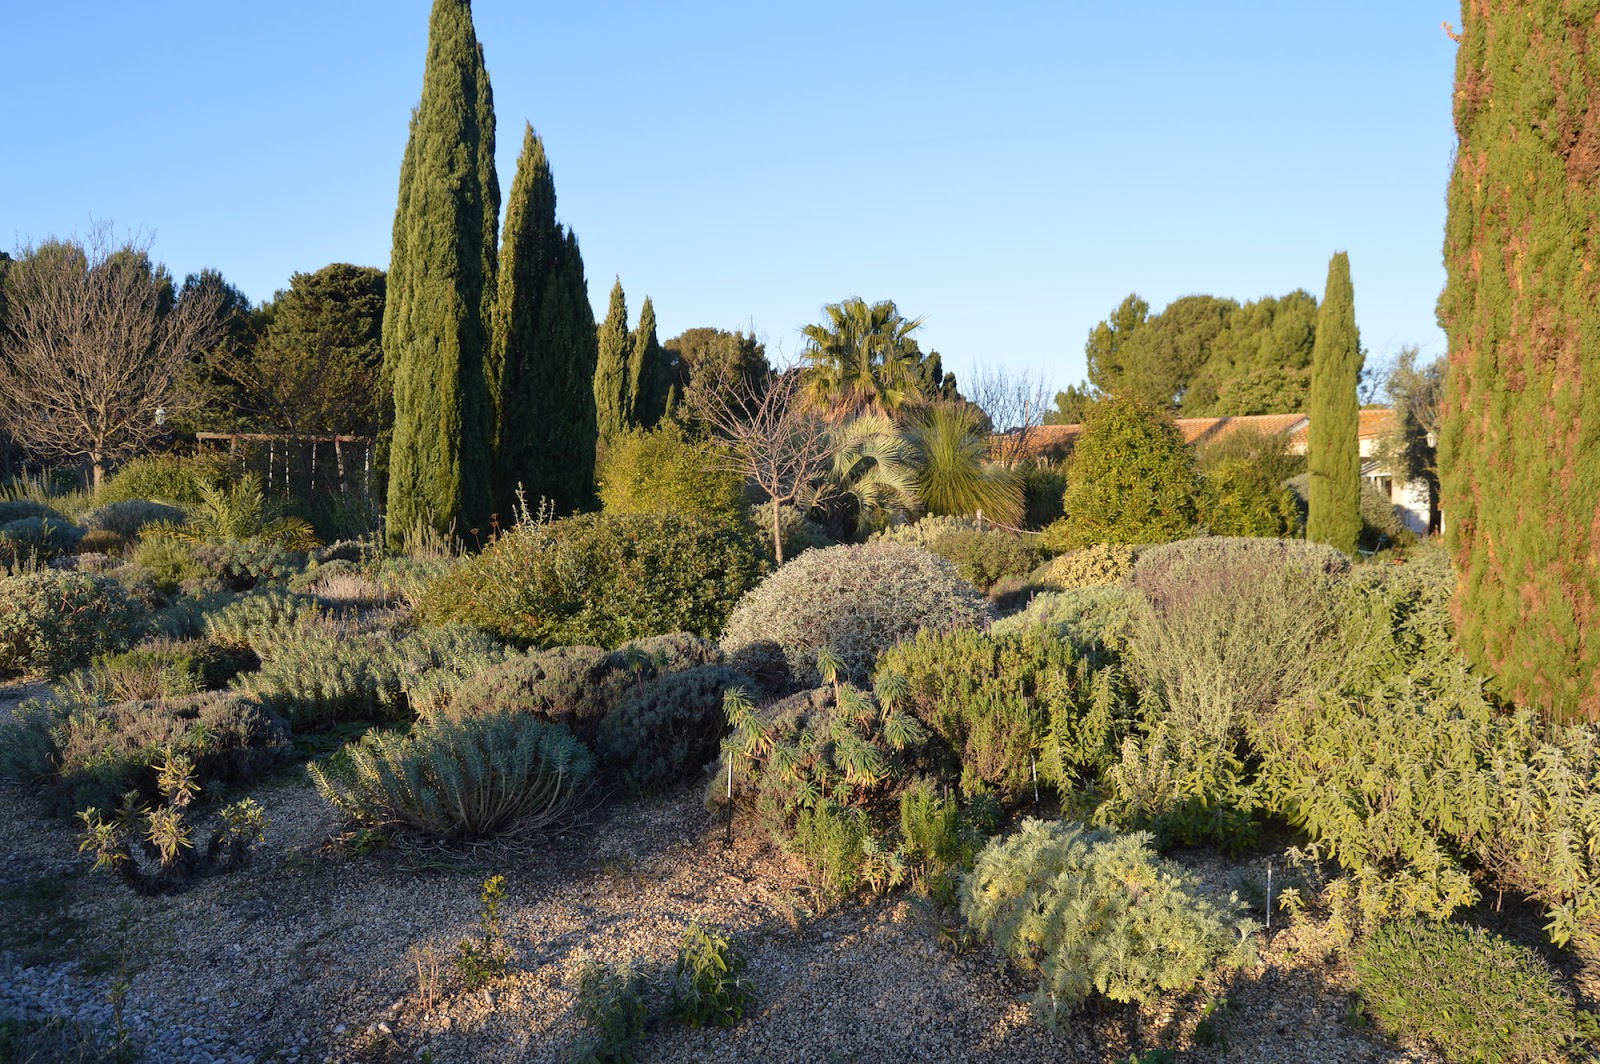 Noel S Garden Blog Olivier Filippi And The Mediterranean Garden